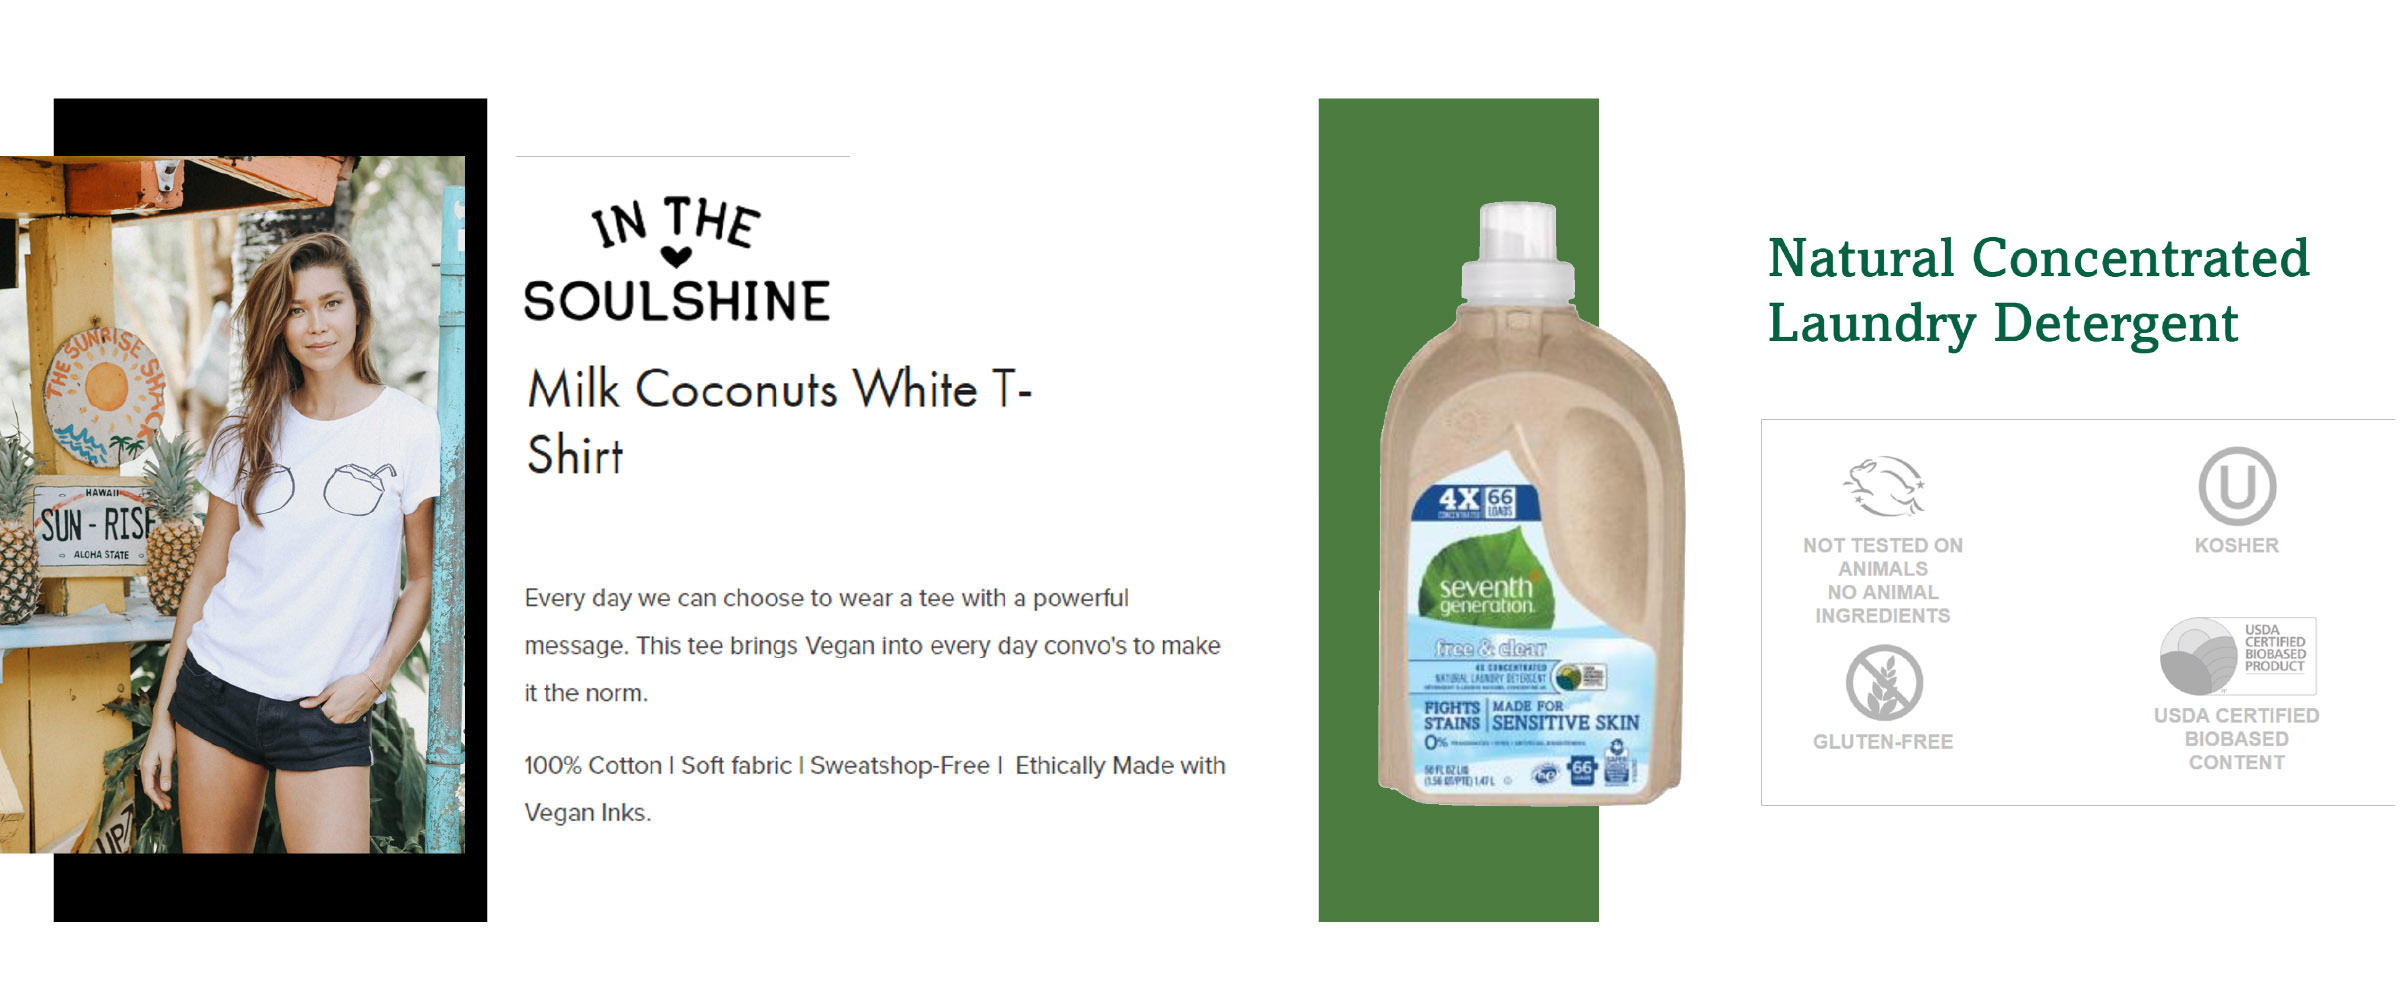 In The Soulshine with a collection of vegan clothing and The Seventh Generation with a range of gluten-free detergents